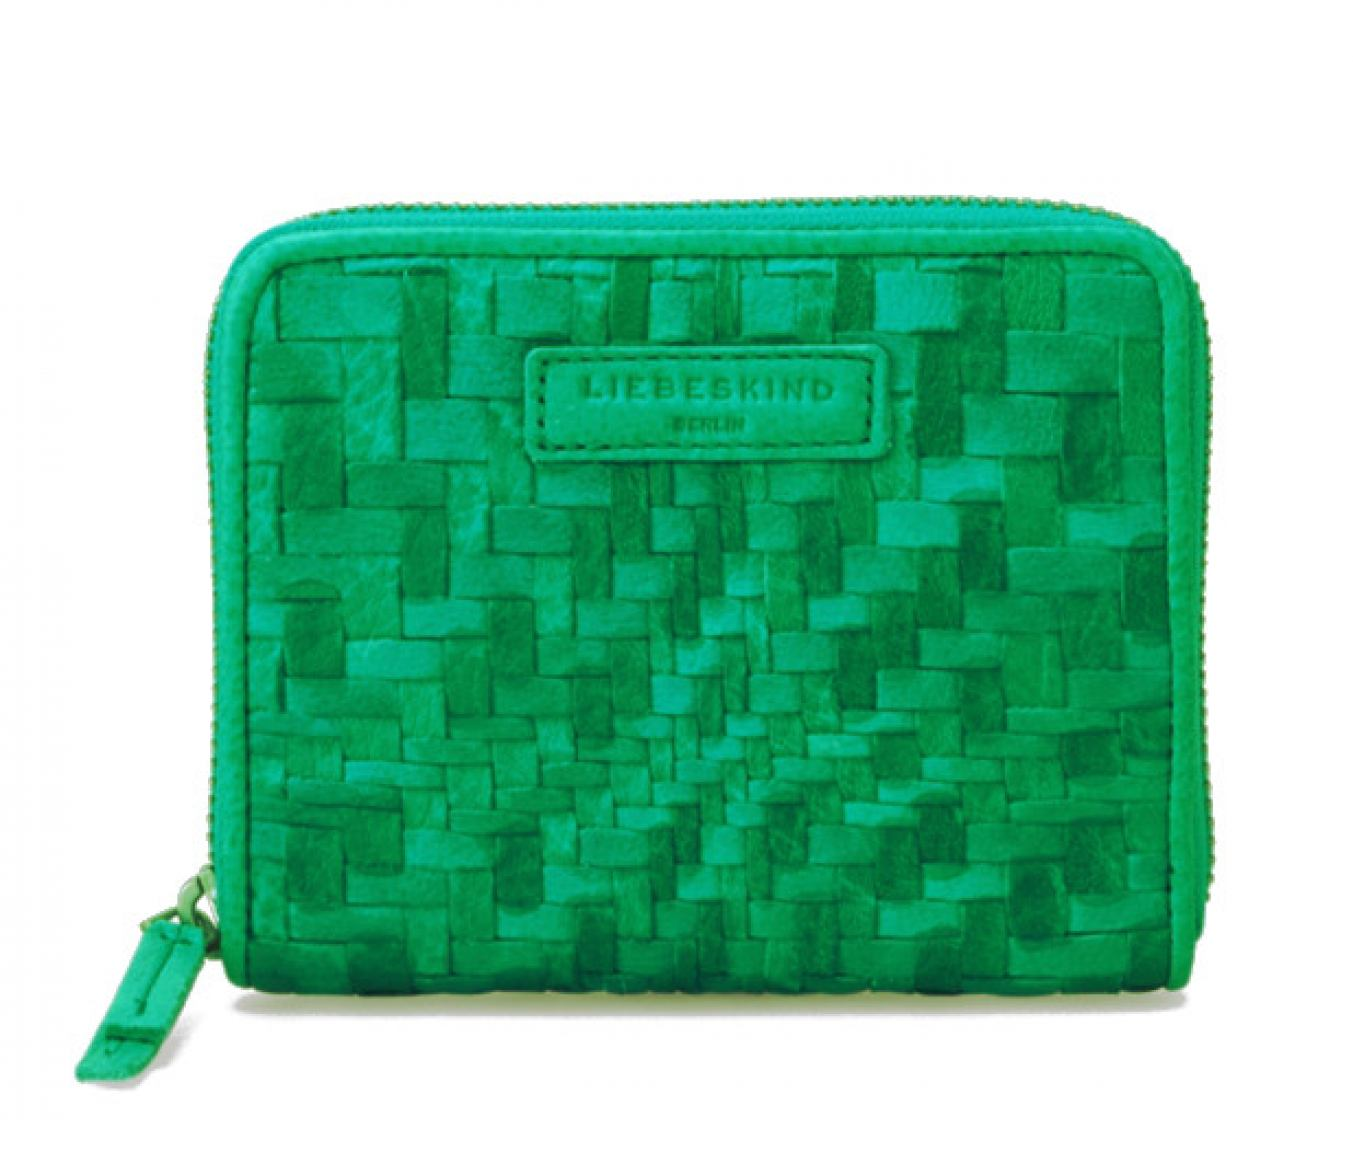 Liebeskind Portmonee ConnyS7 Double Dyed Weave Palm Green